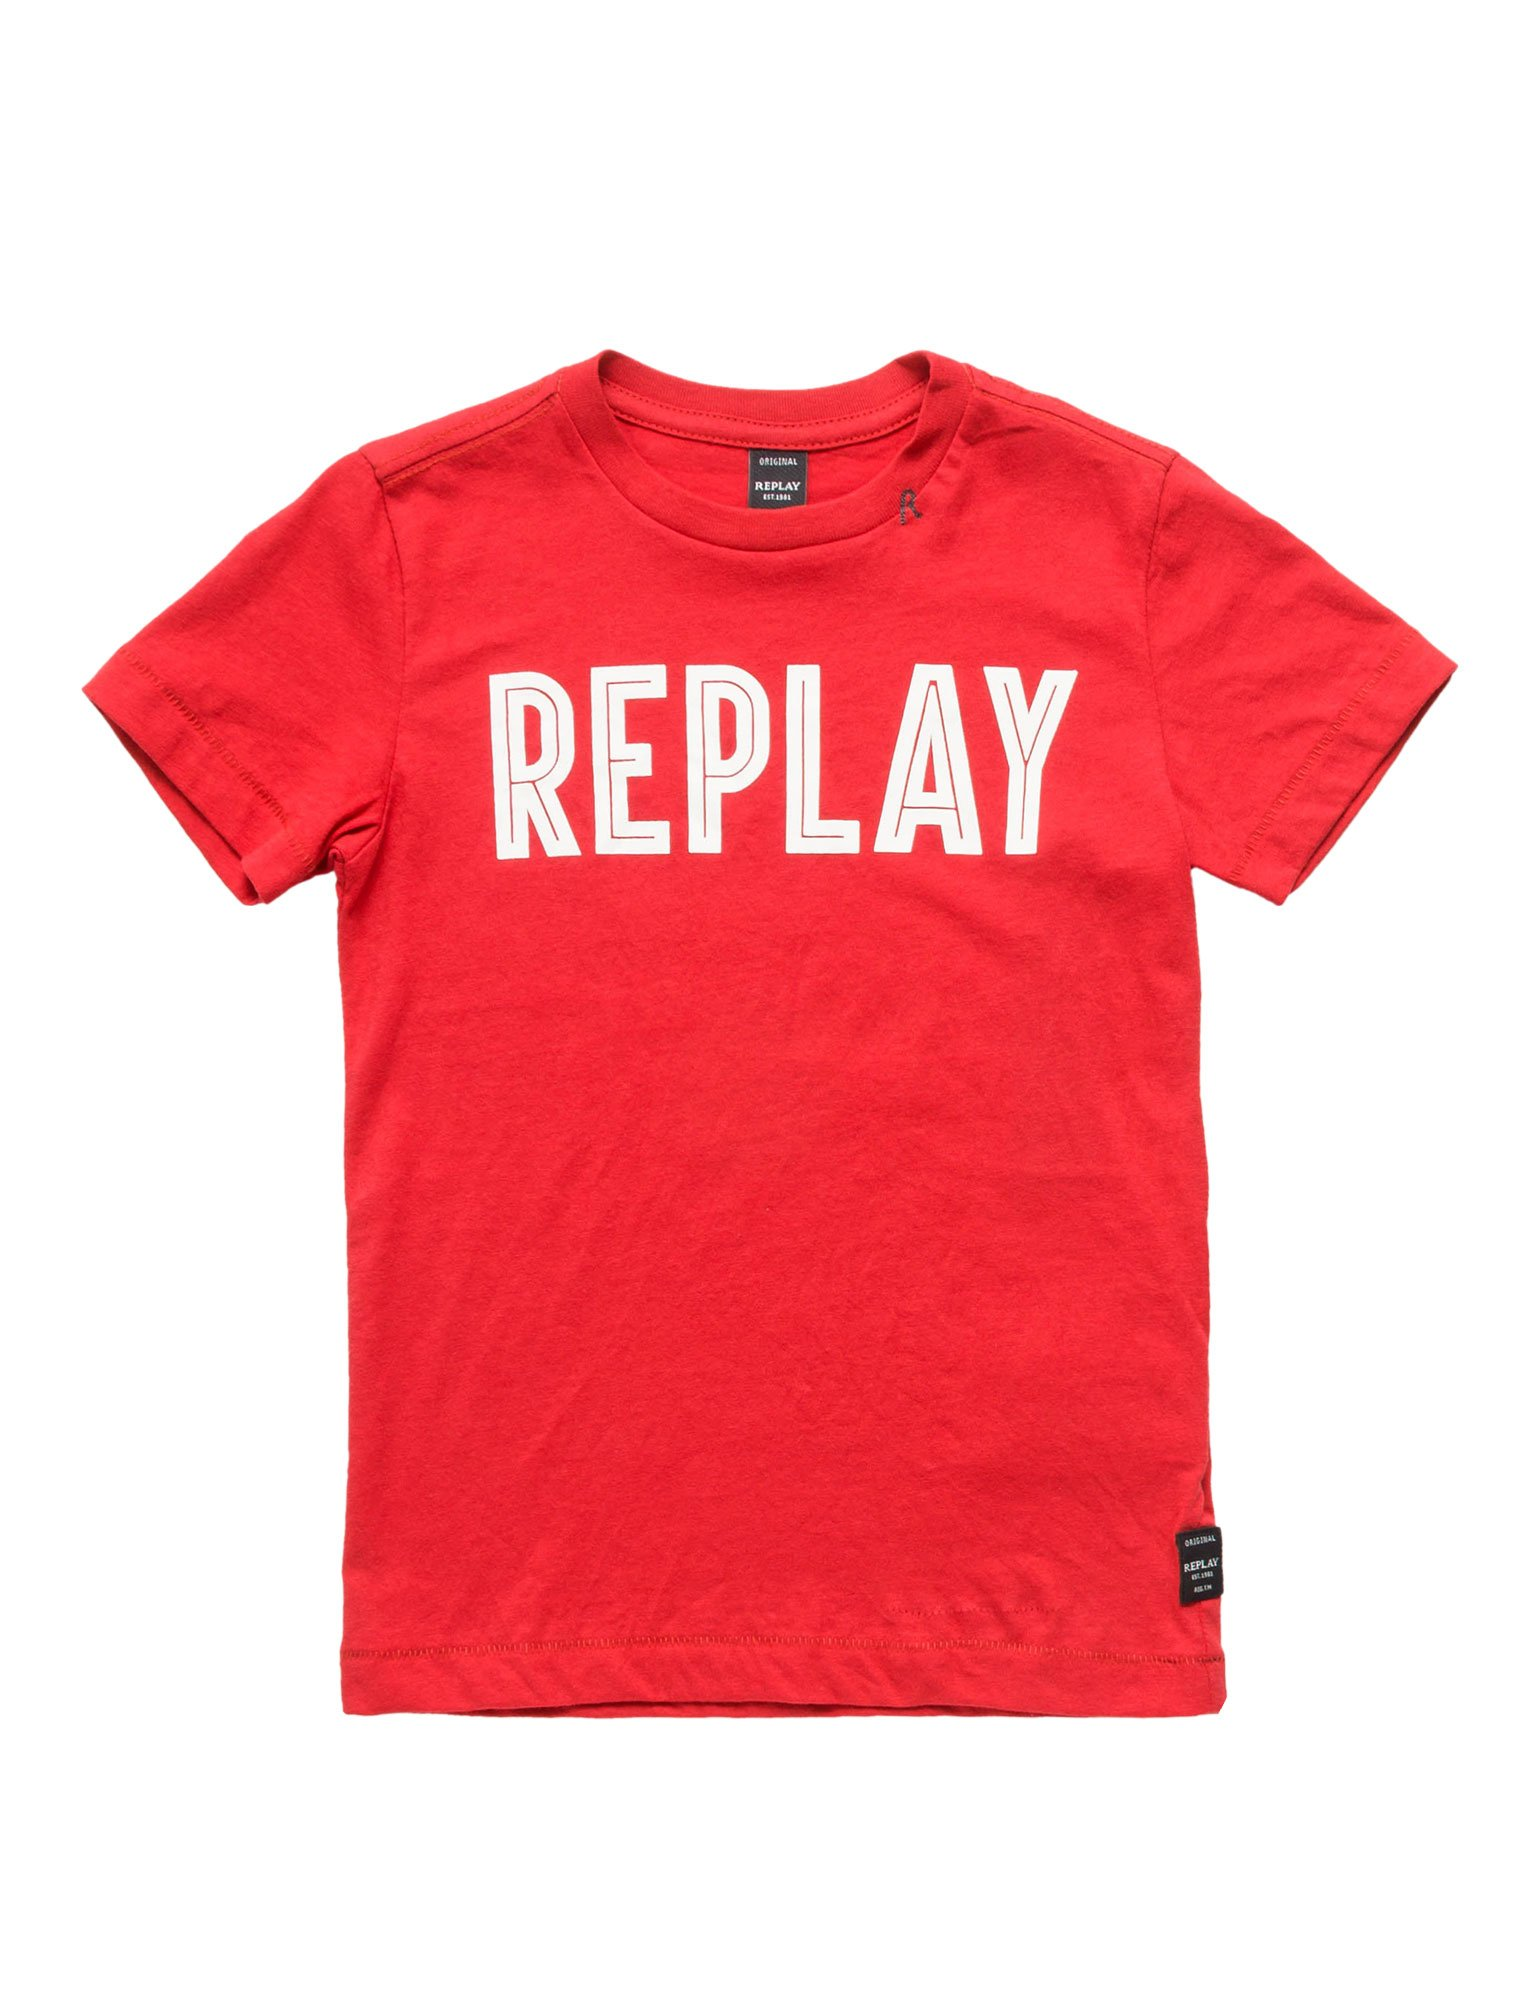 Replay Regular Fit Jersey Boy's T-Shirt In Red In Size 14 Years Red